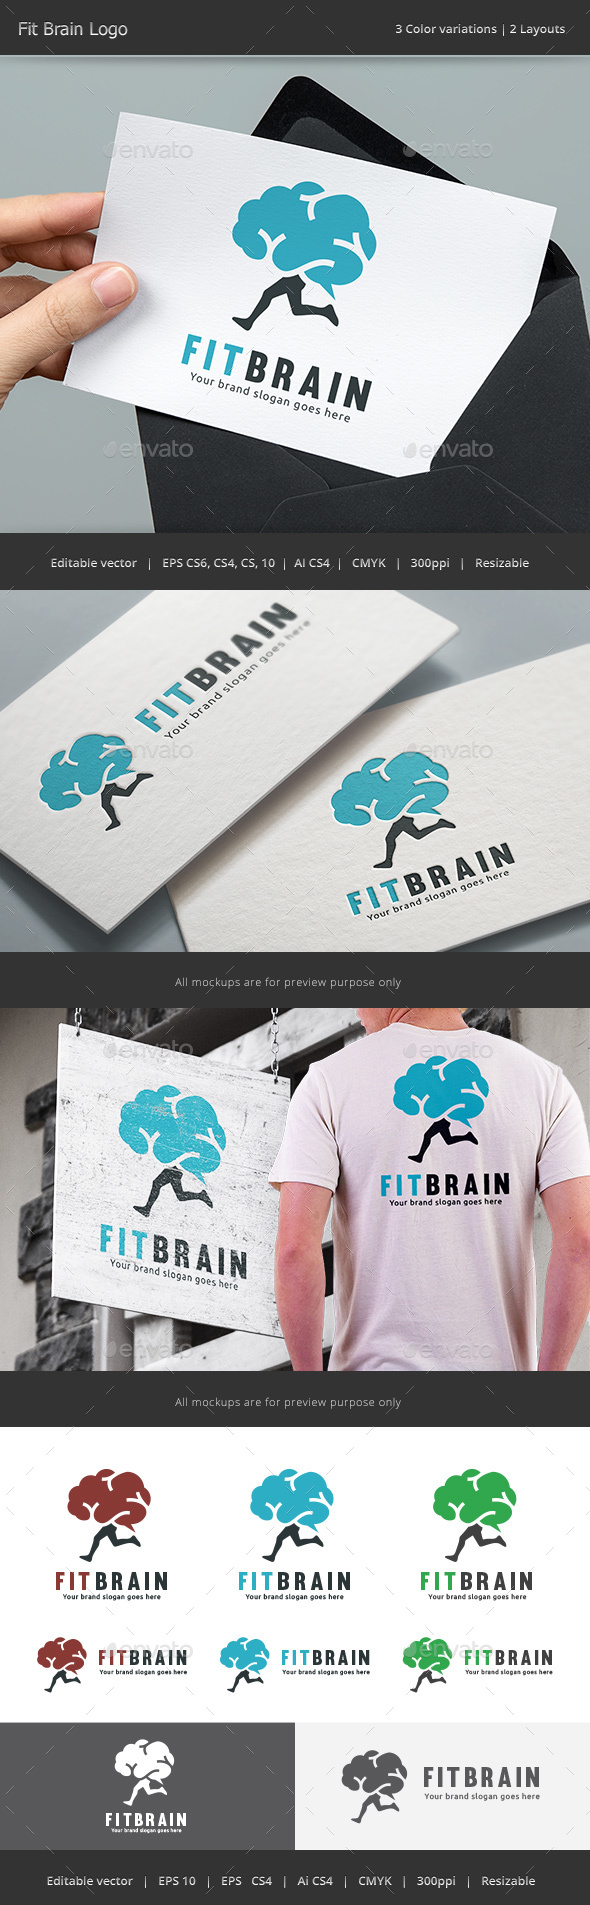 Fit Brain Logo - Vector Abstract